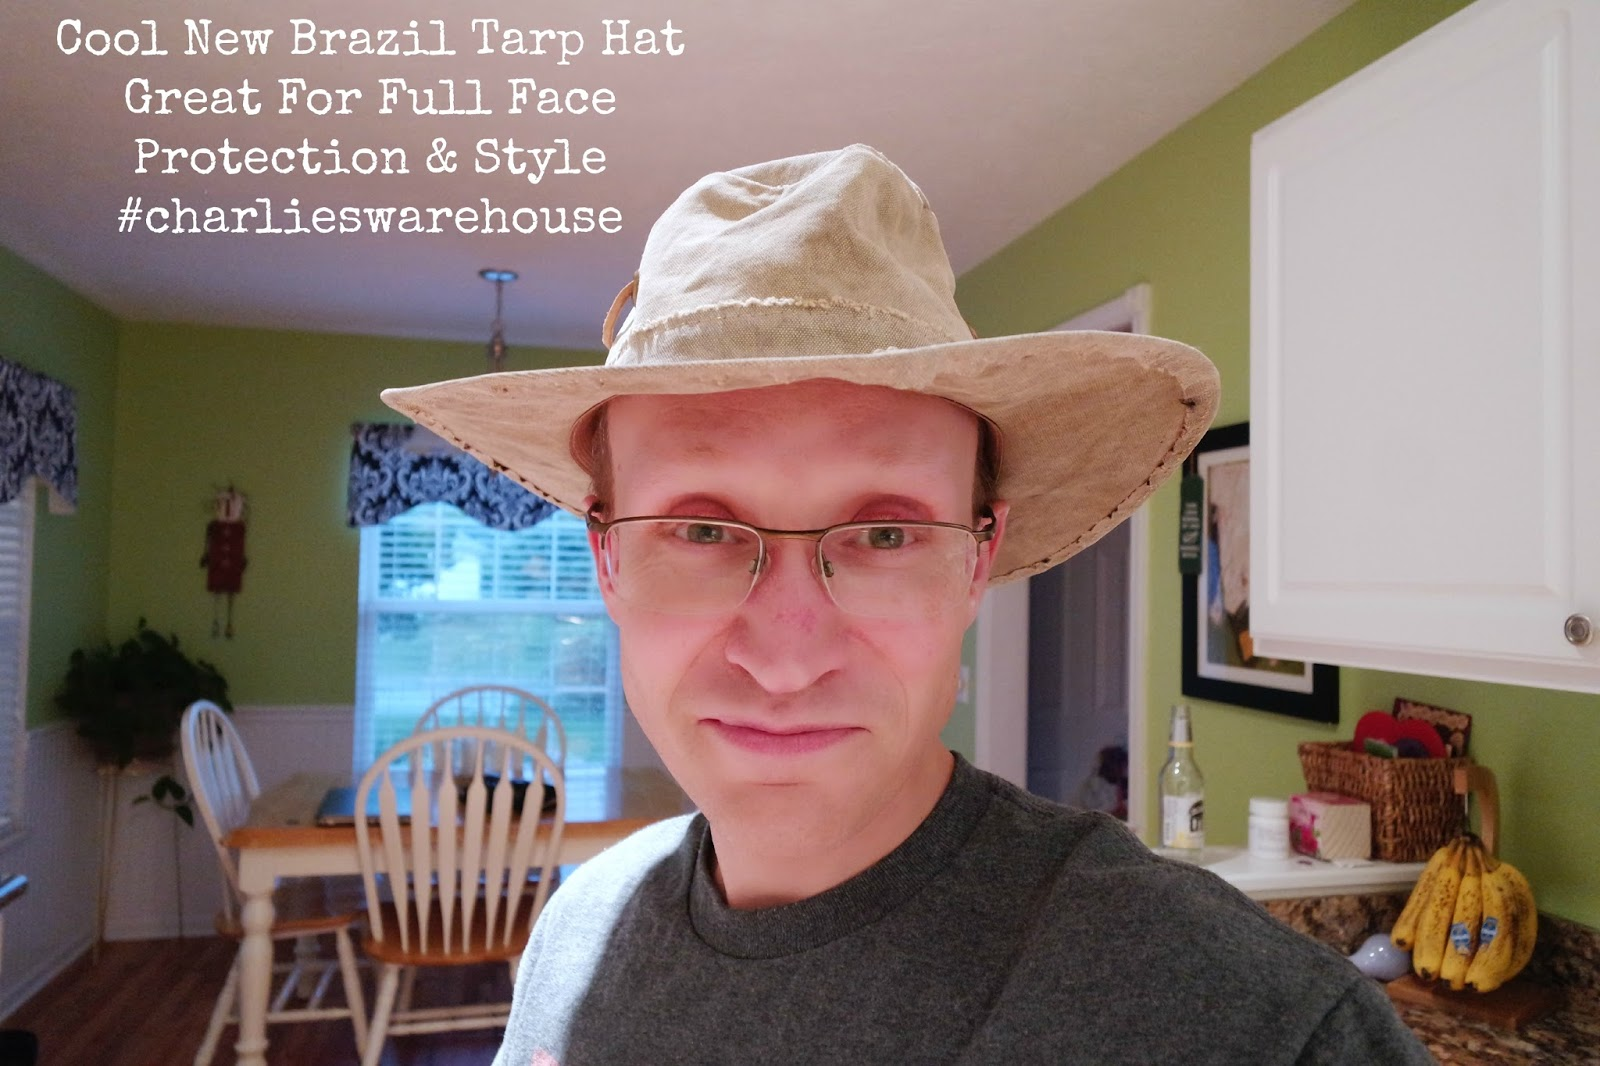 Real Deal Brazil Tarp Hat Gives You Style   Protection  charlieswarehouse 170de22a4f6